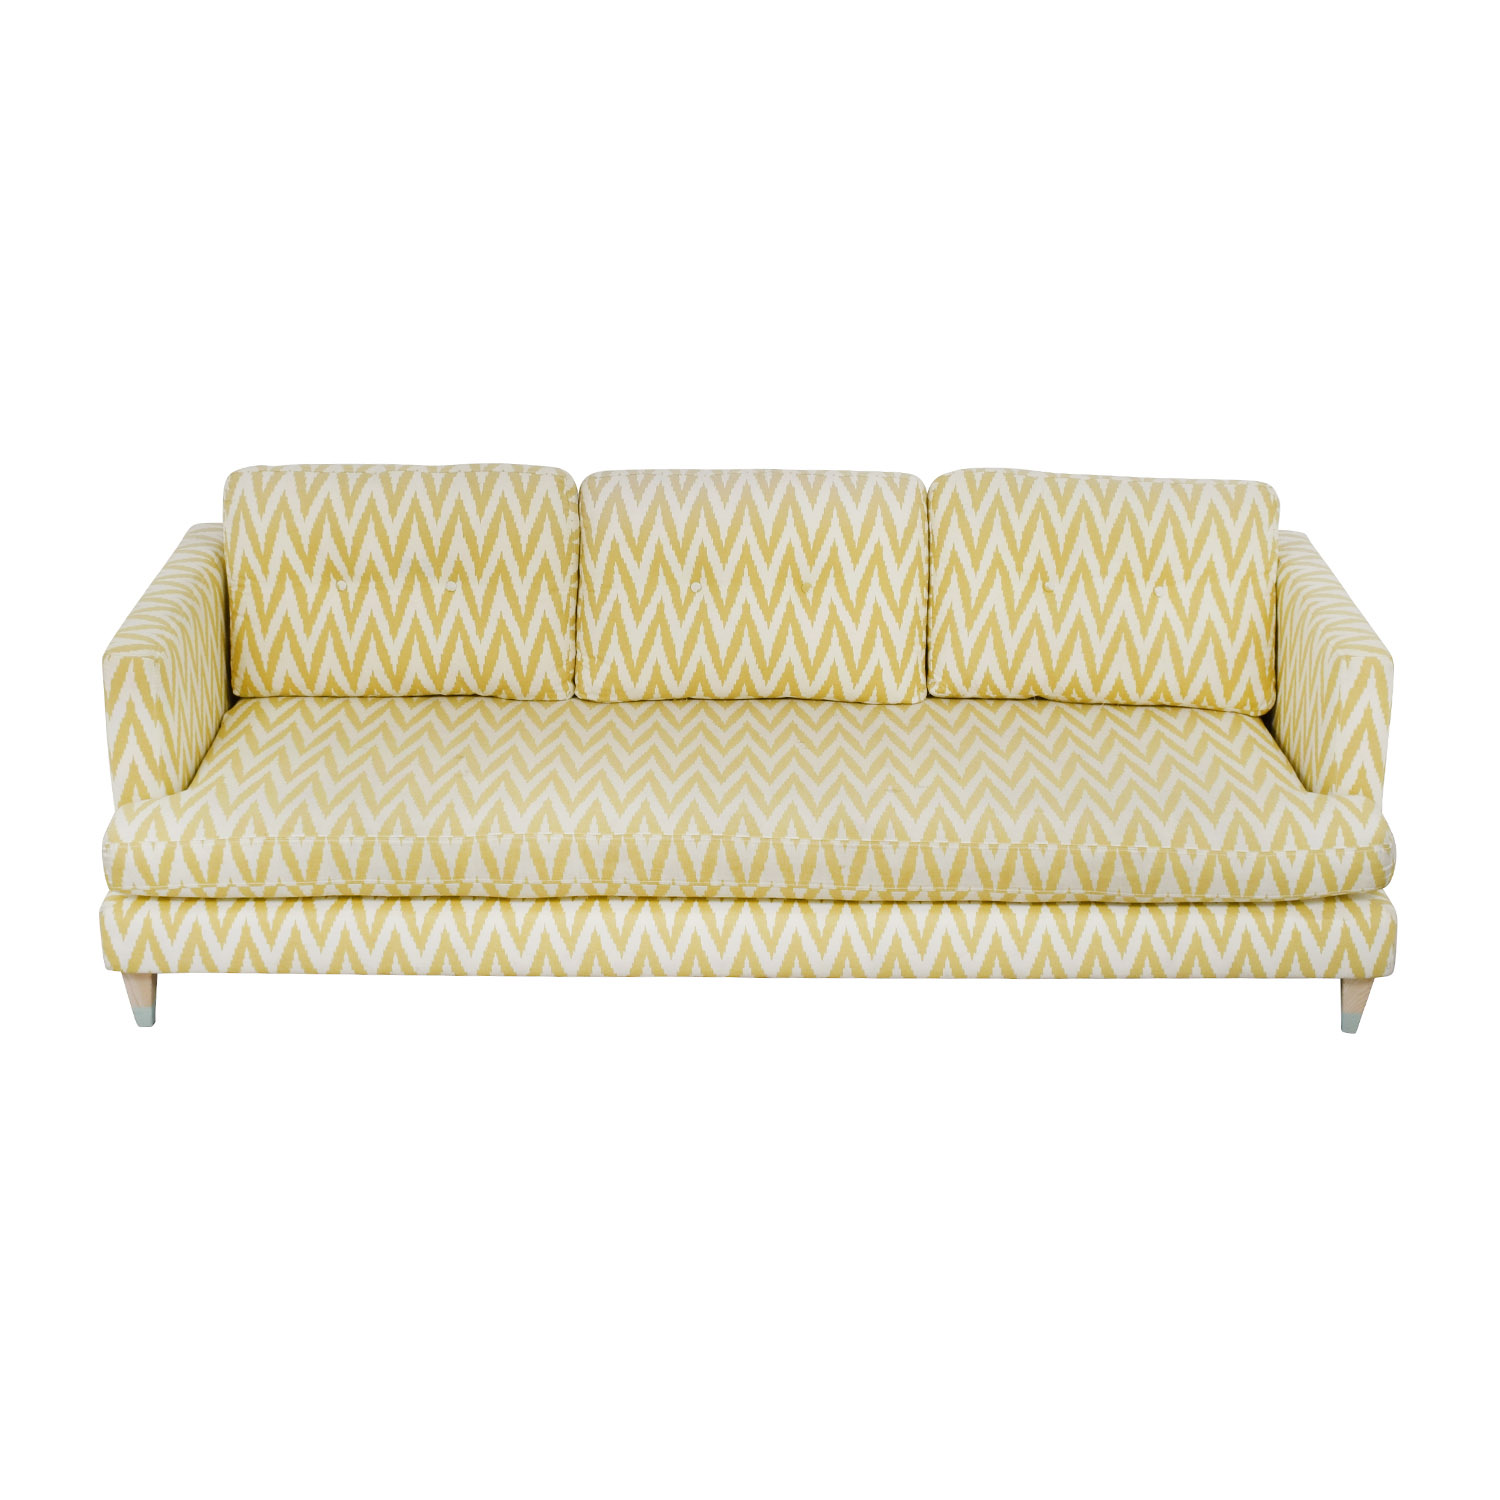 buy West Elm Yellow and White Single Cushion Sofa West Elm Classic Sofas